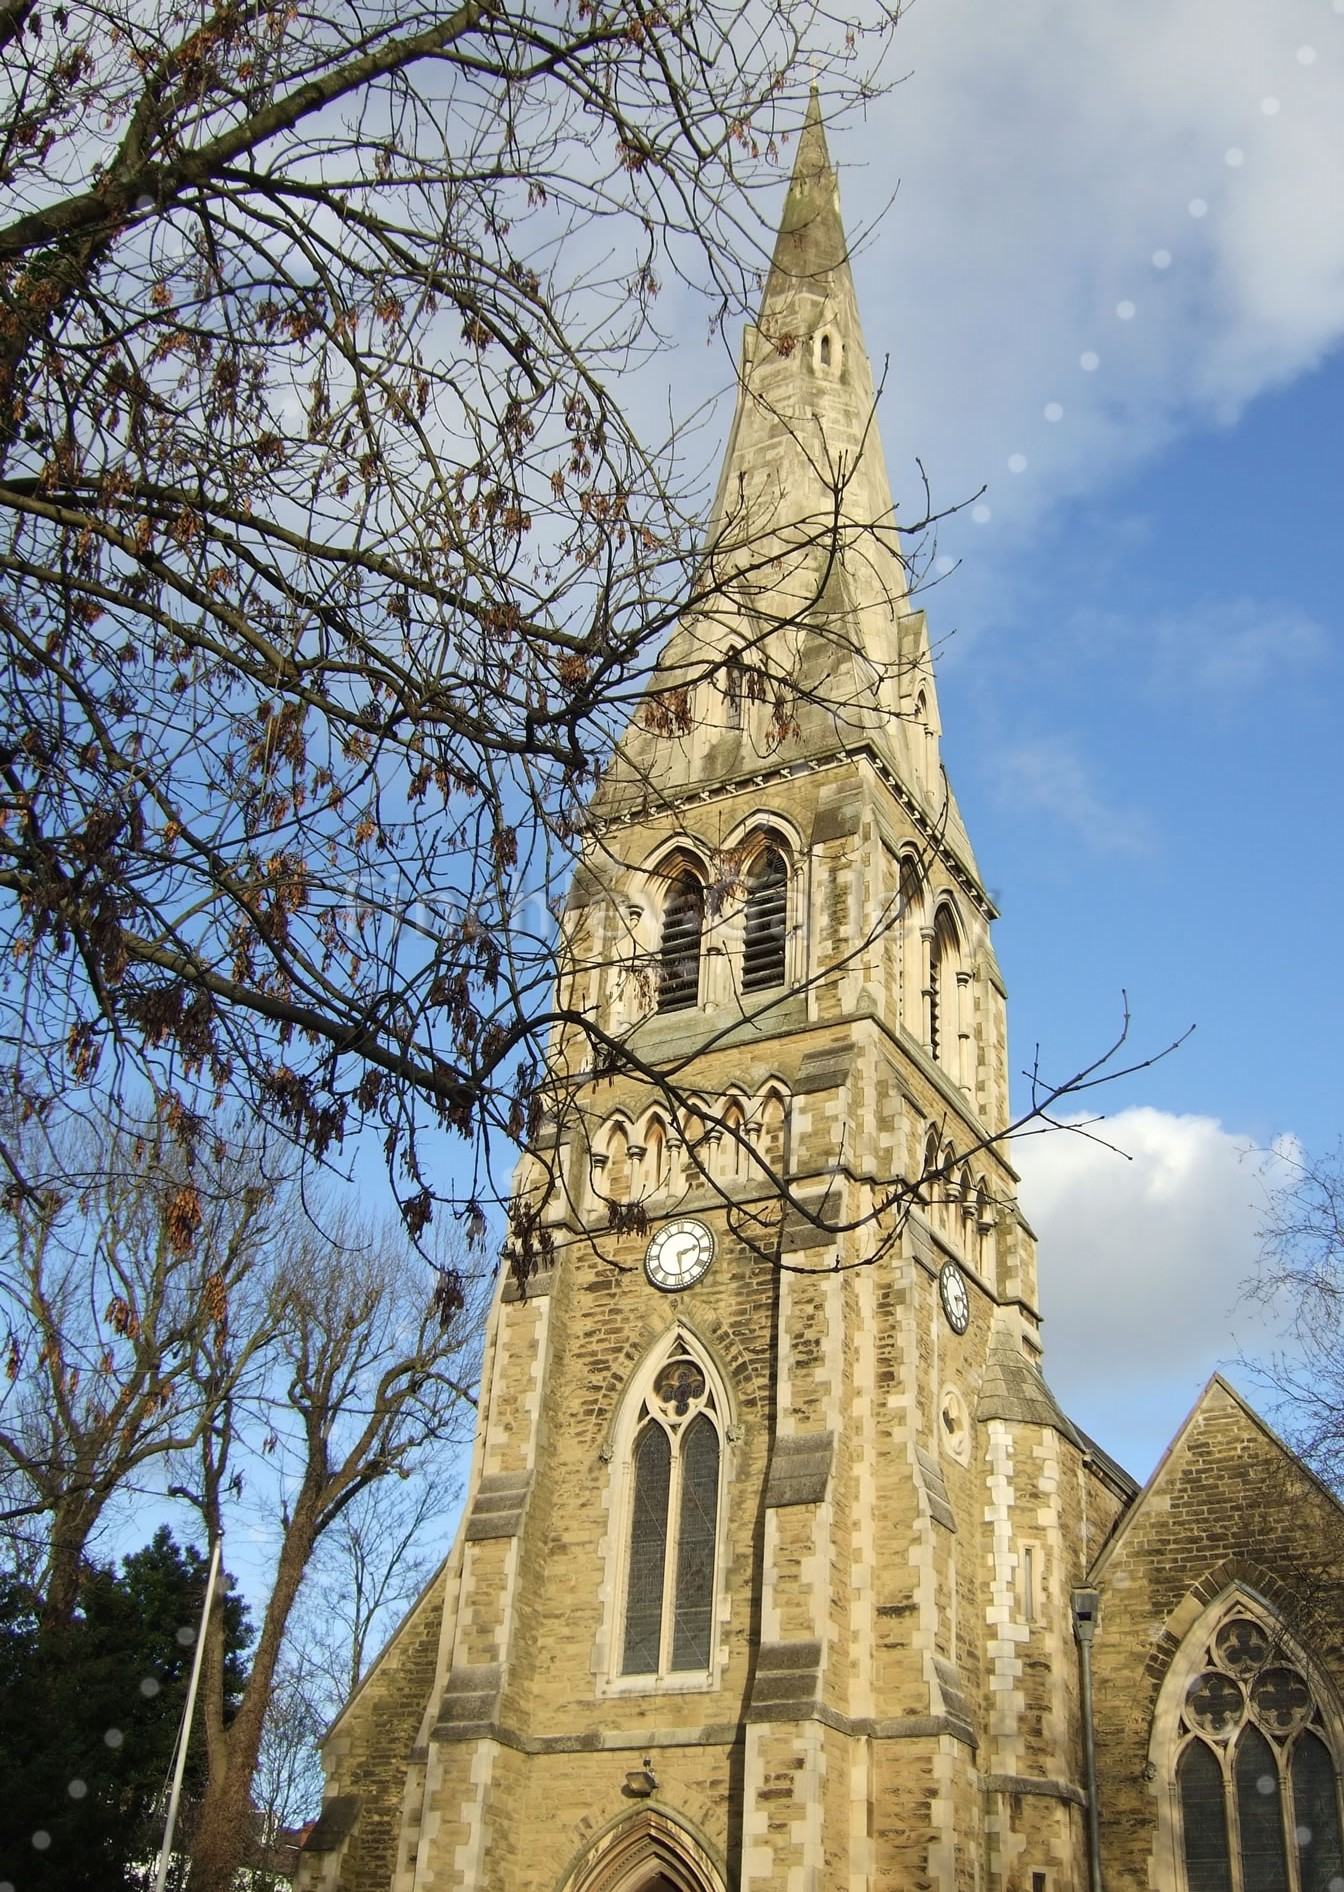 St Michael's Church Highgate 2015 The church stands higher than any other London Church